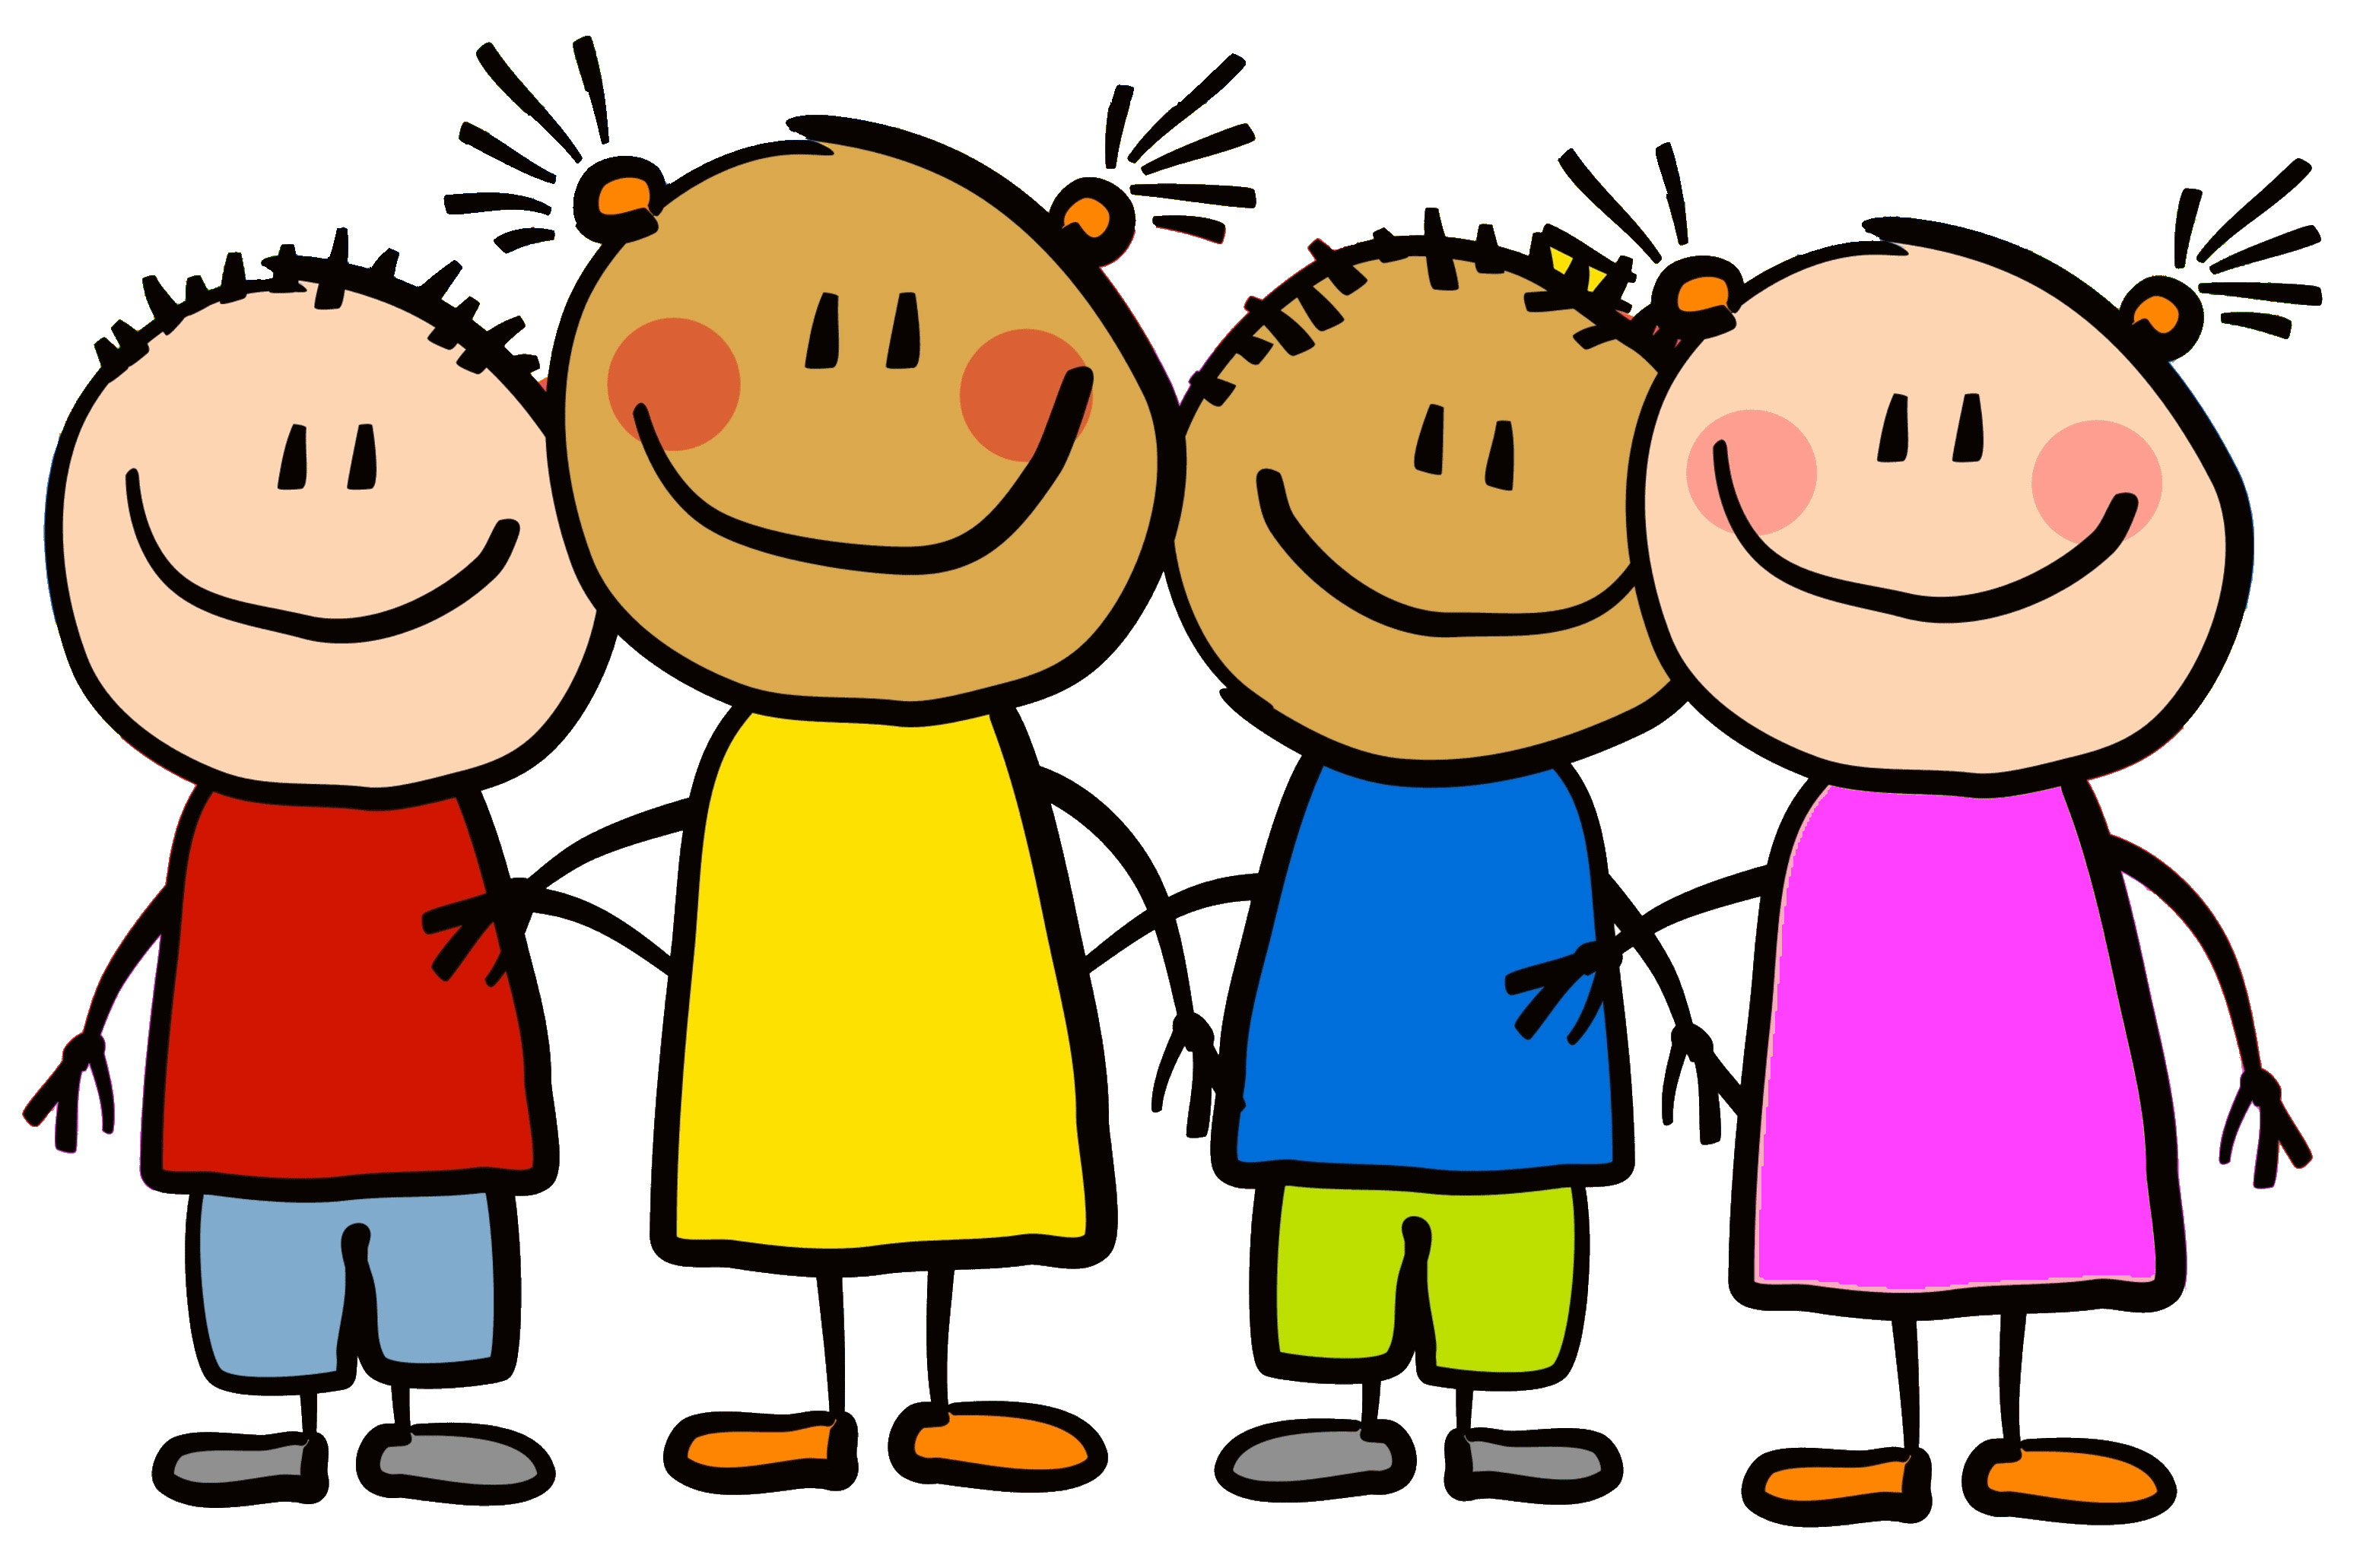 Toddler images clipart